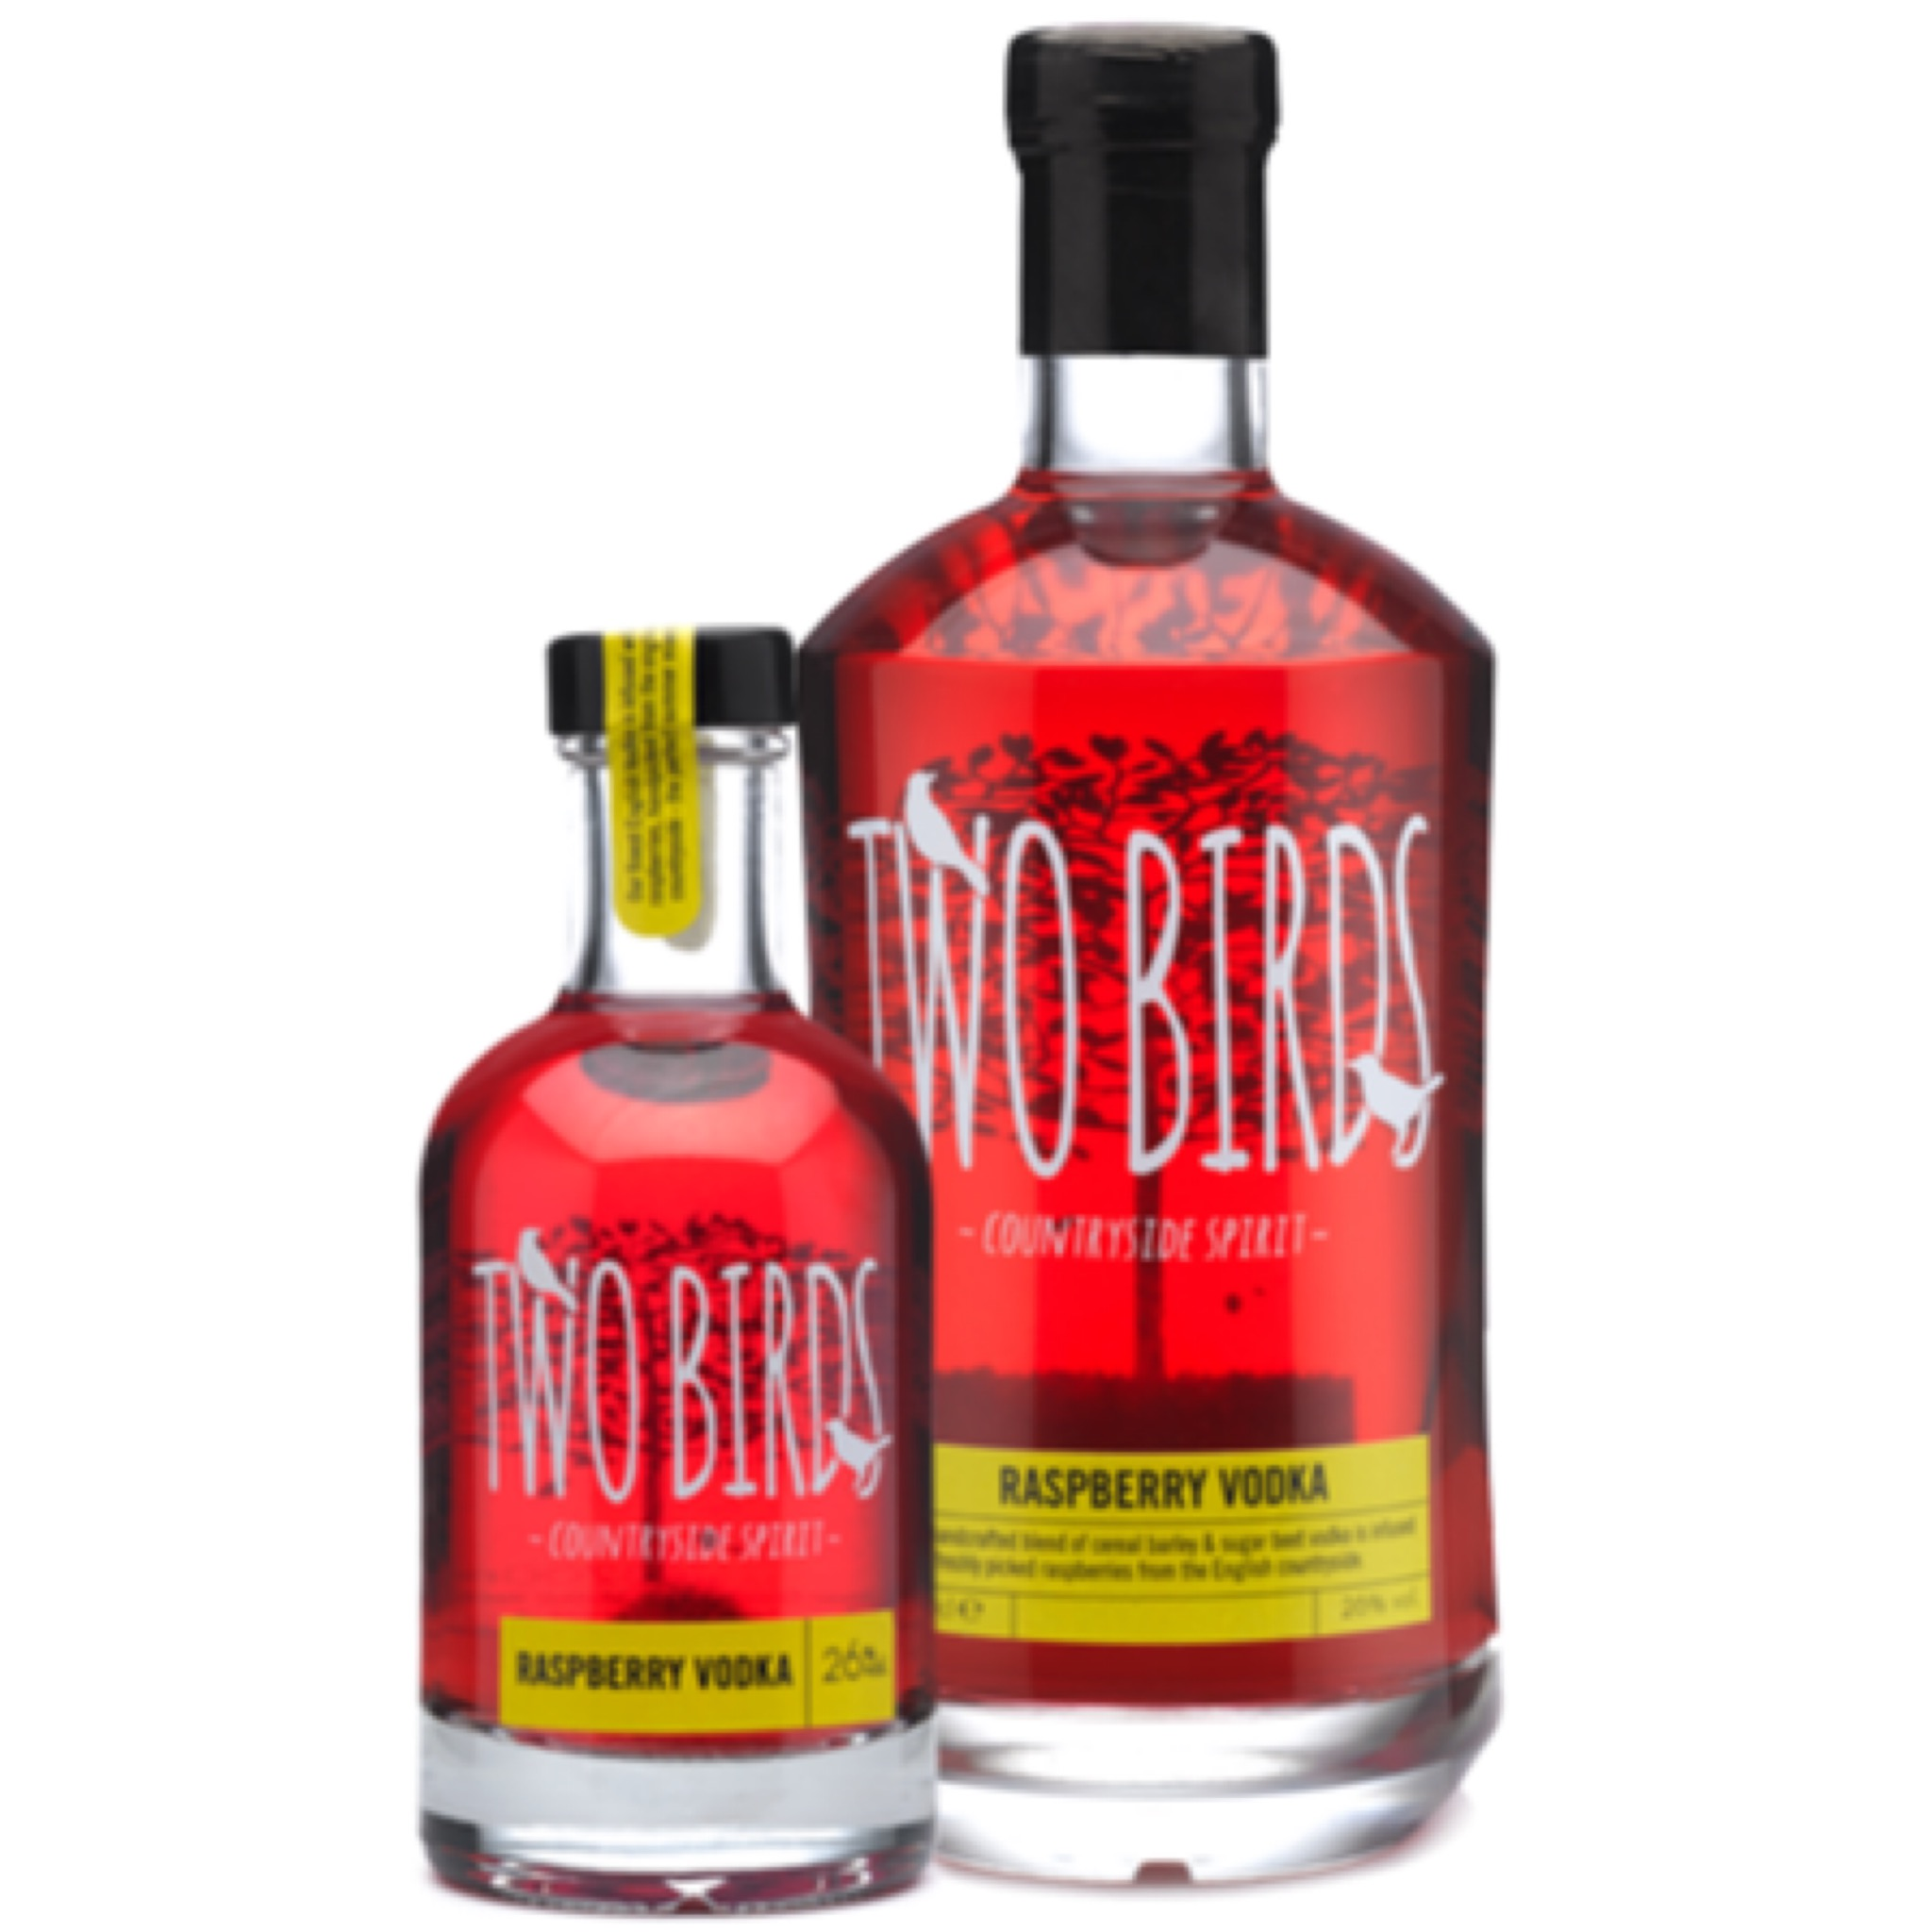 Two Birds Raspberry Vodka 26% 200ml & 700ml